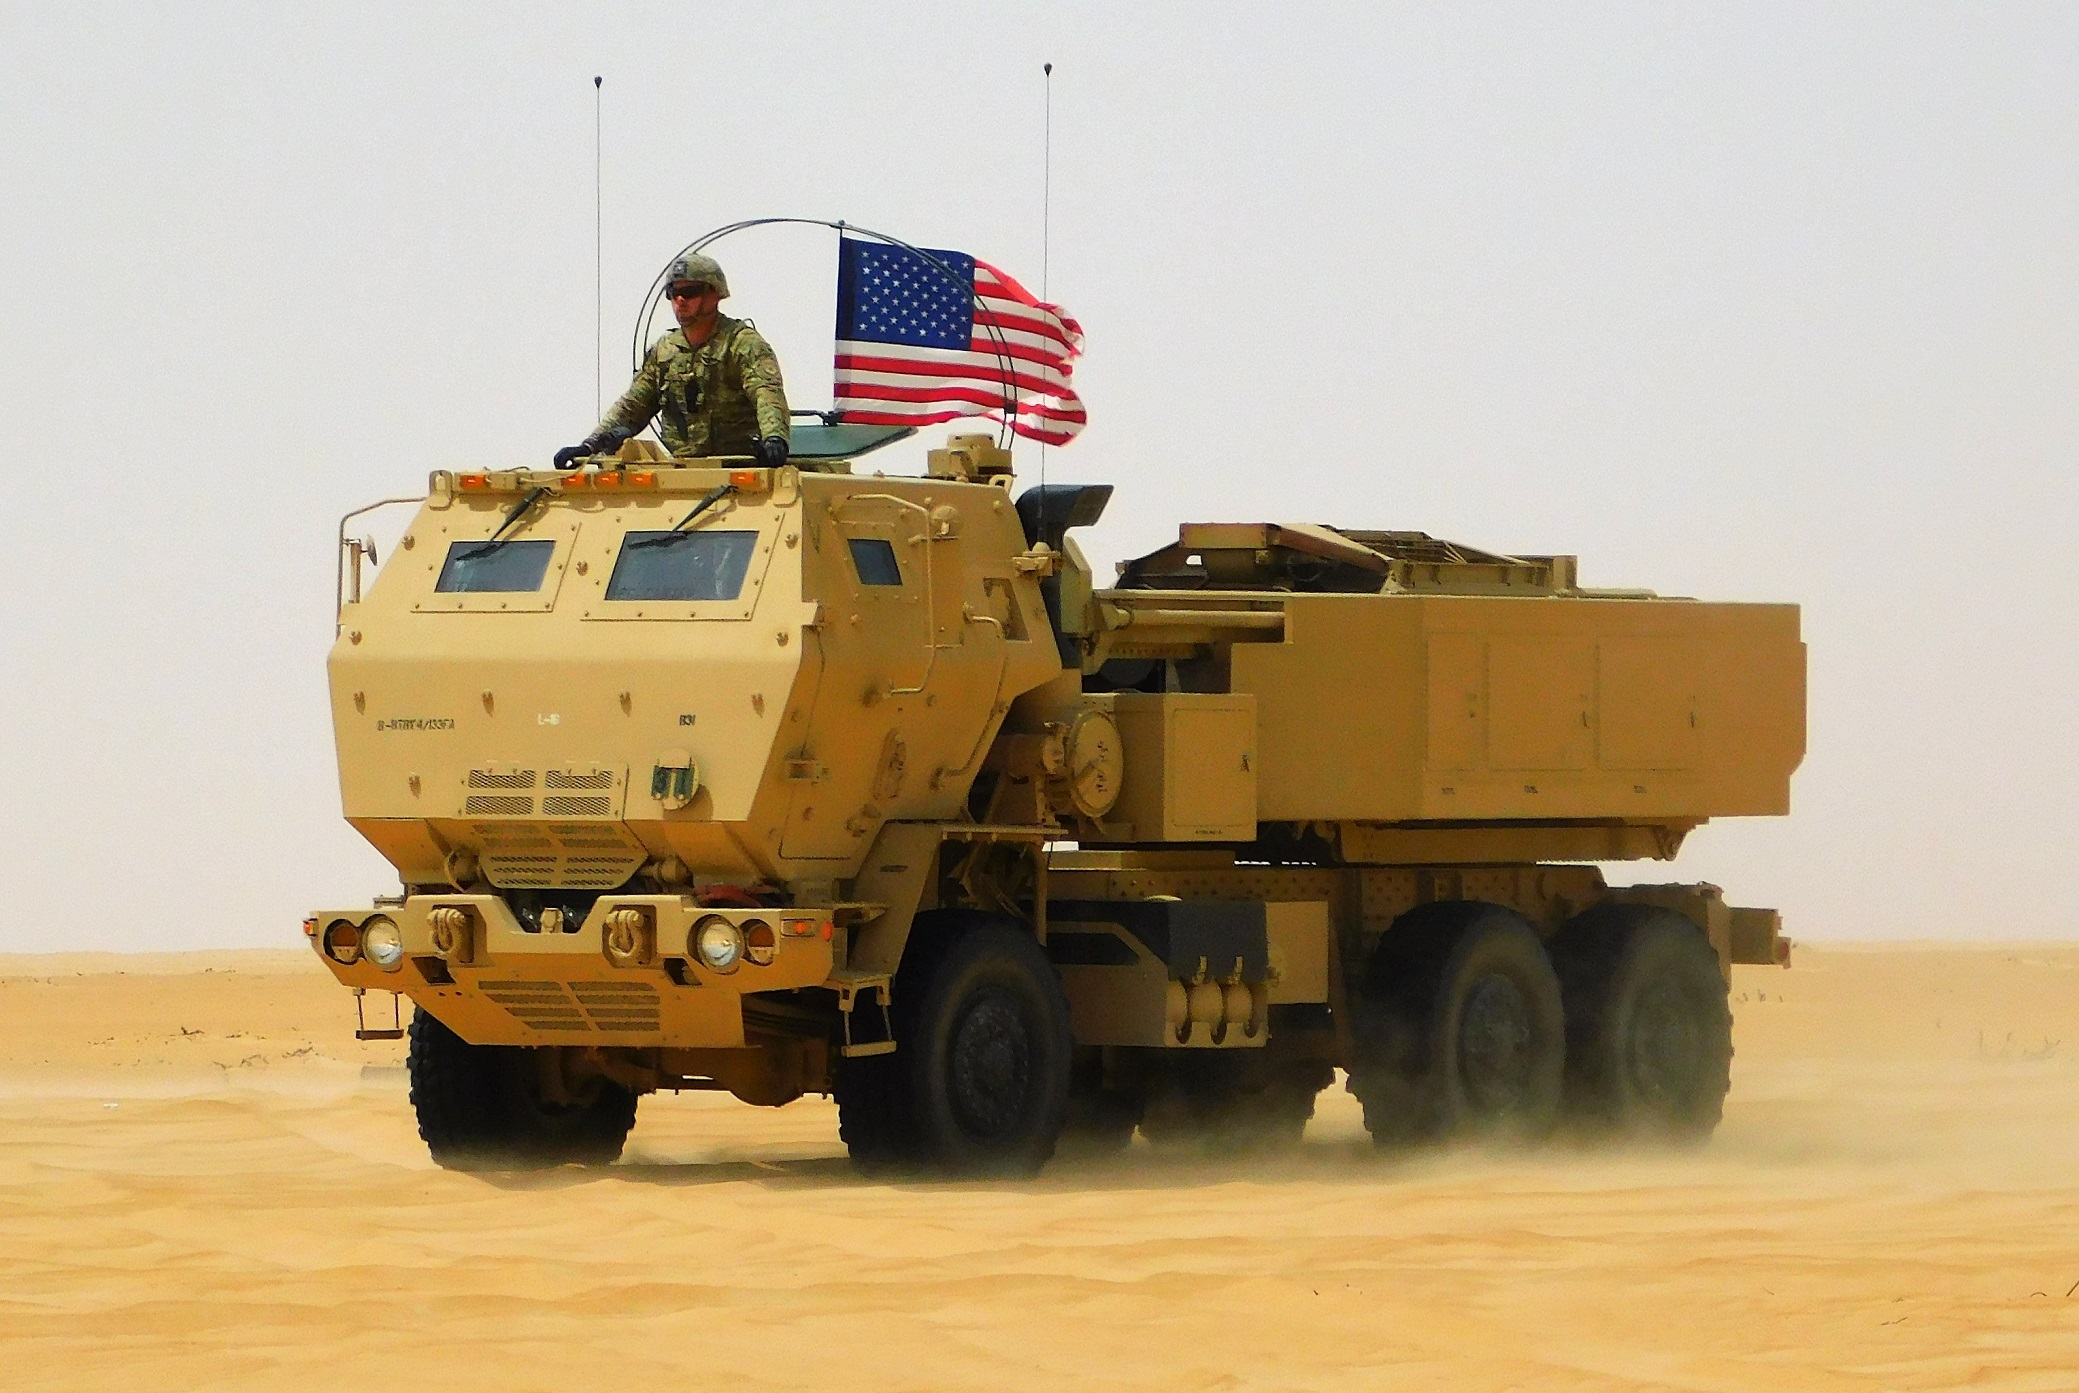 U.S. Army expects to receive new multirole missile system in 2023